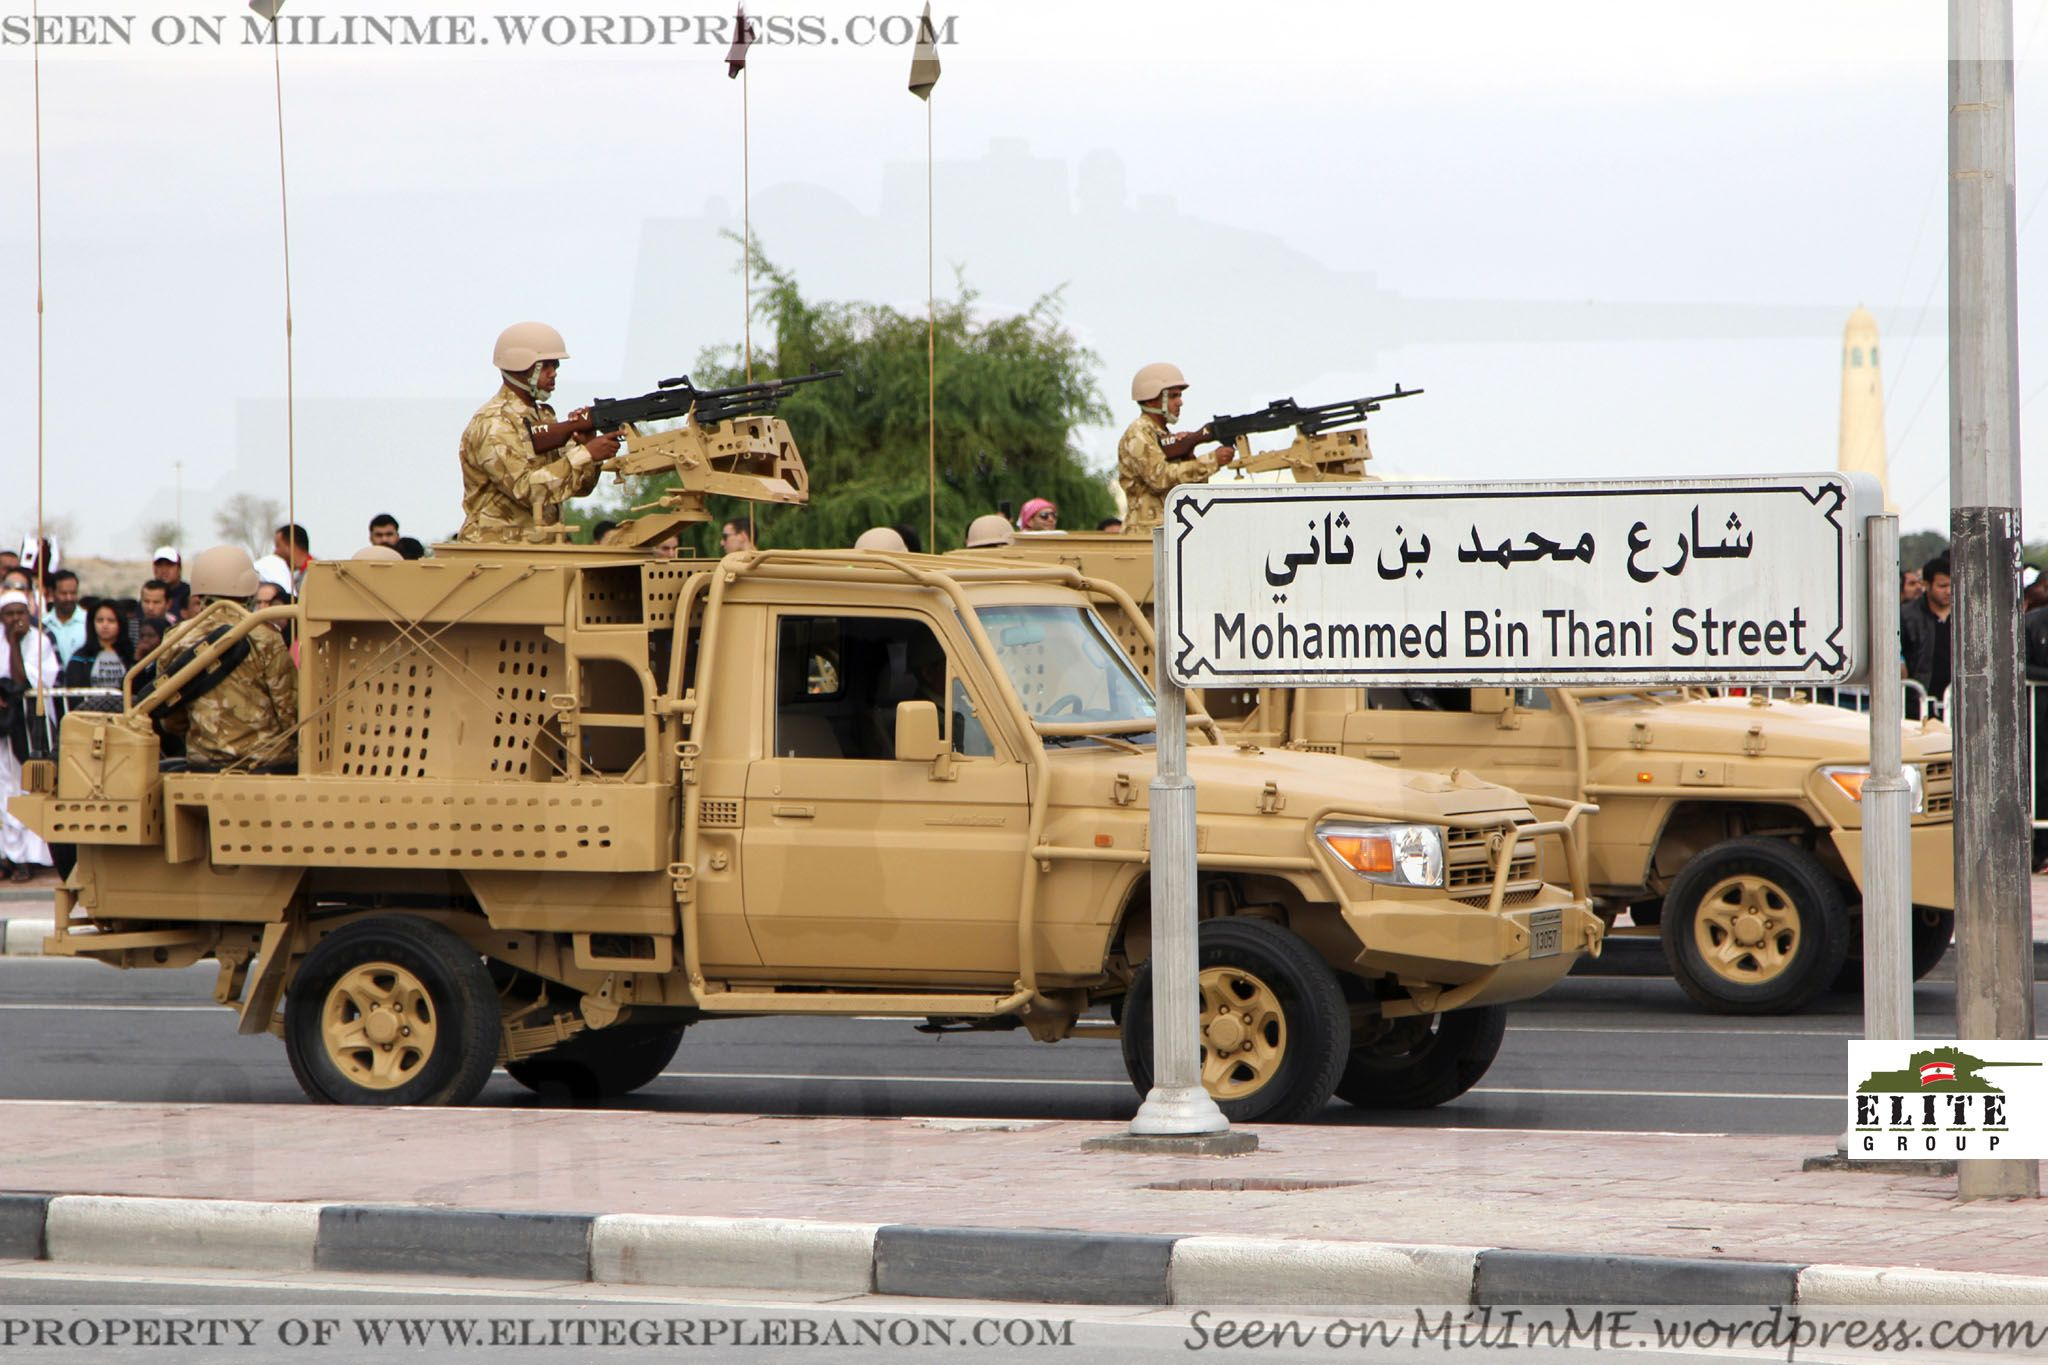 Qatar Armed Forces Toyota Land Cruiser 4500 EFI of the